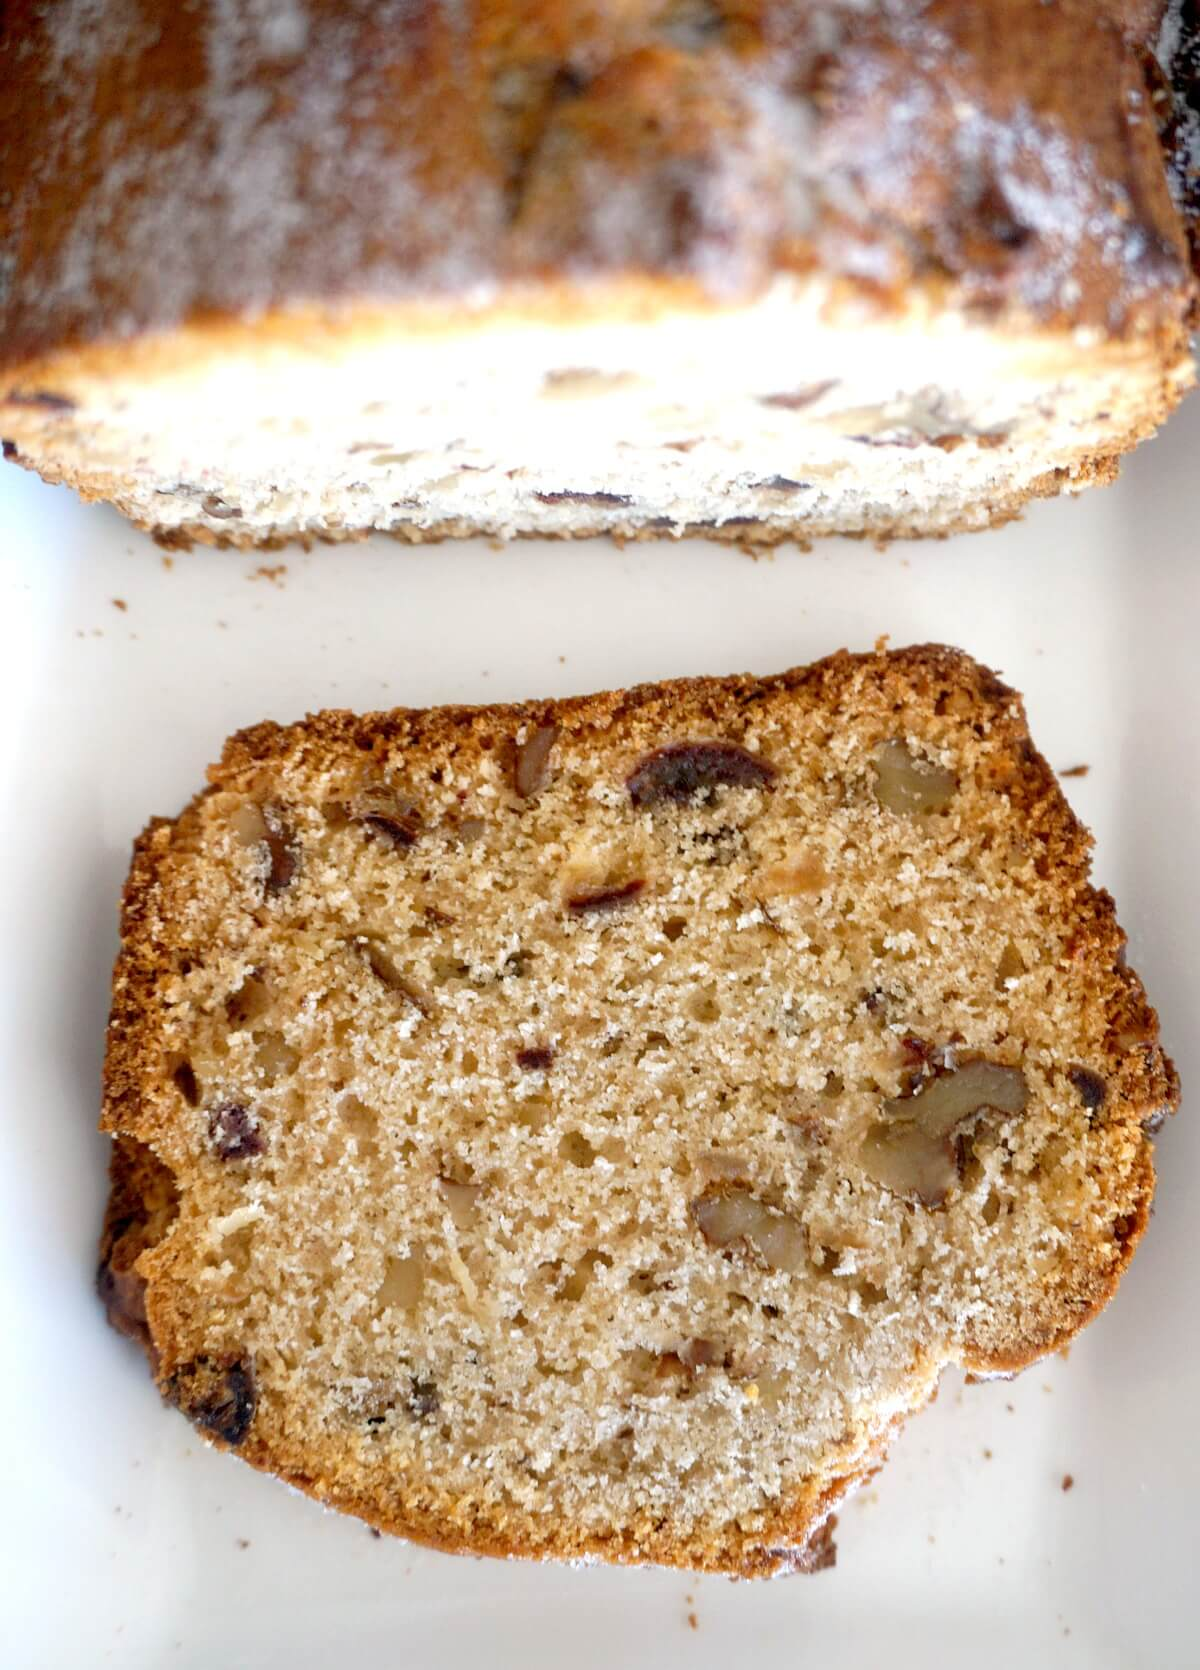 Overhead shoot of a slice of walnut and date loaf on a white plate